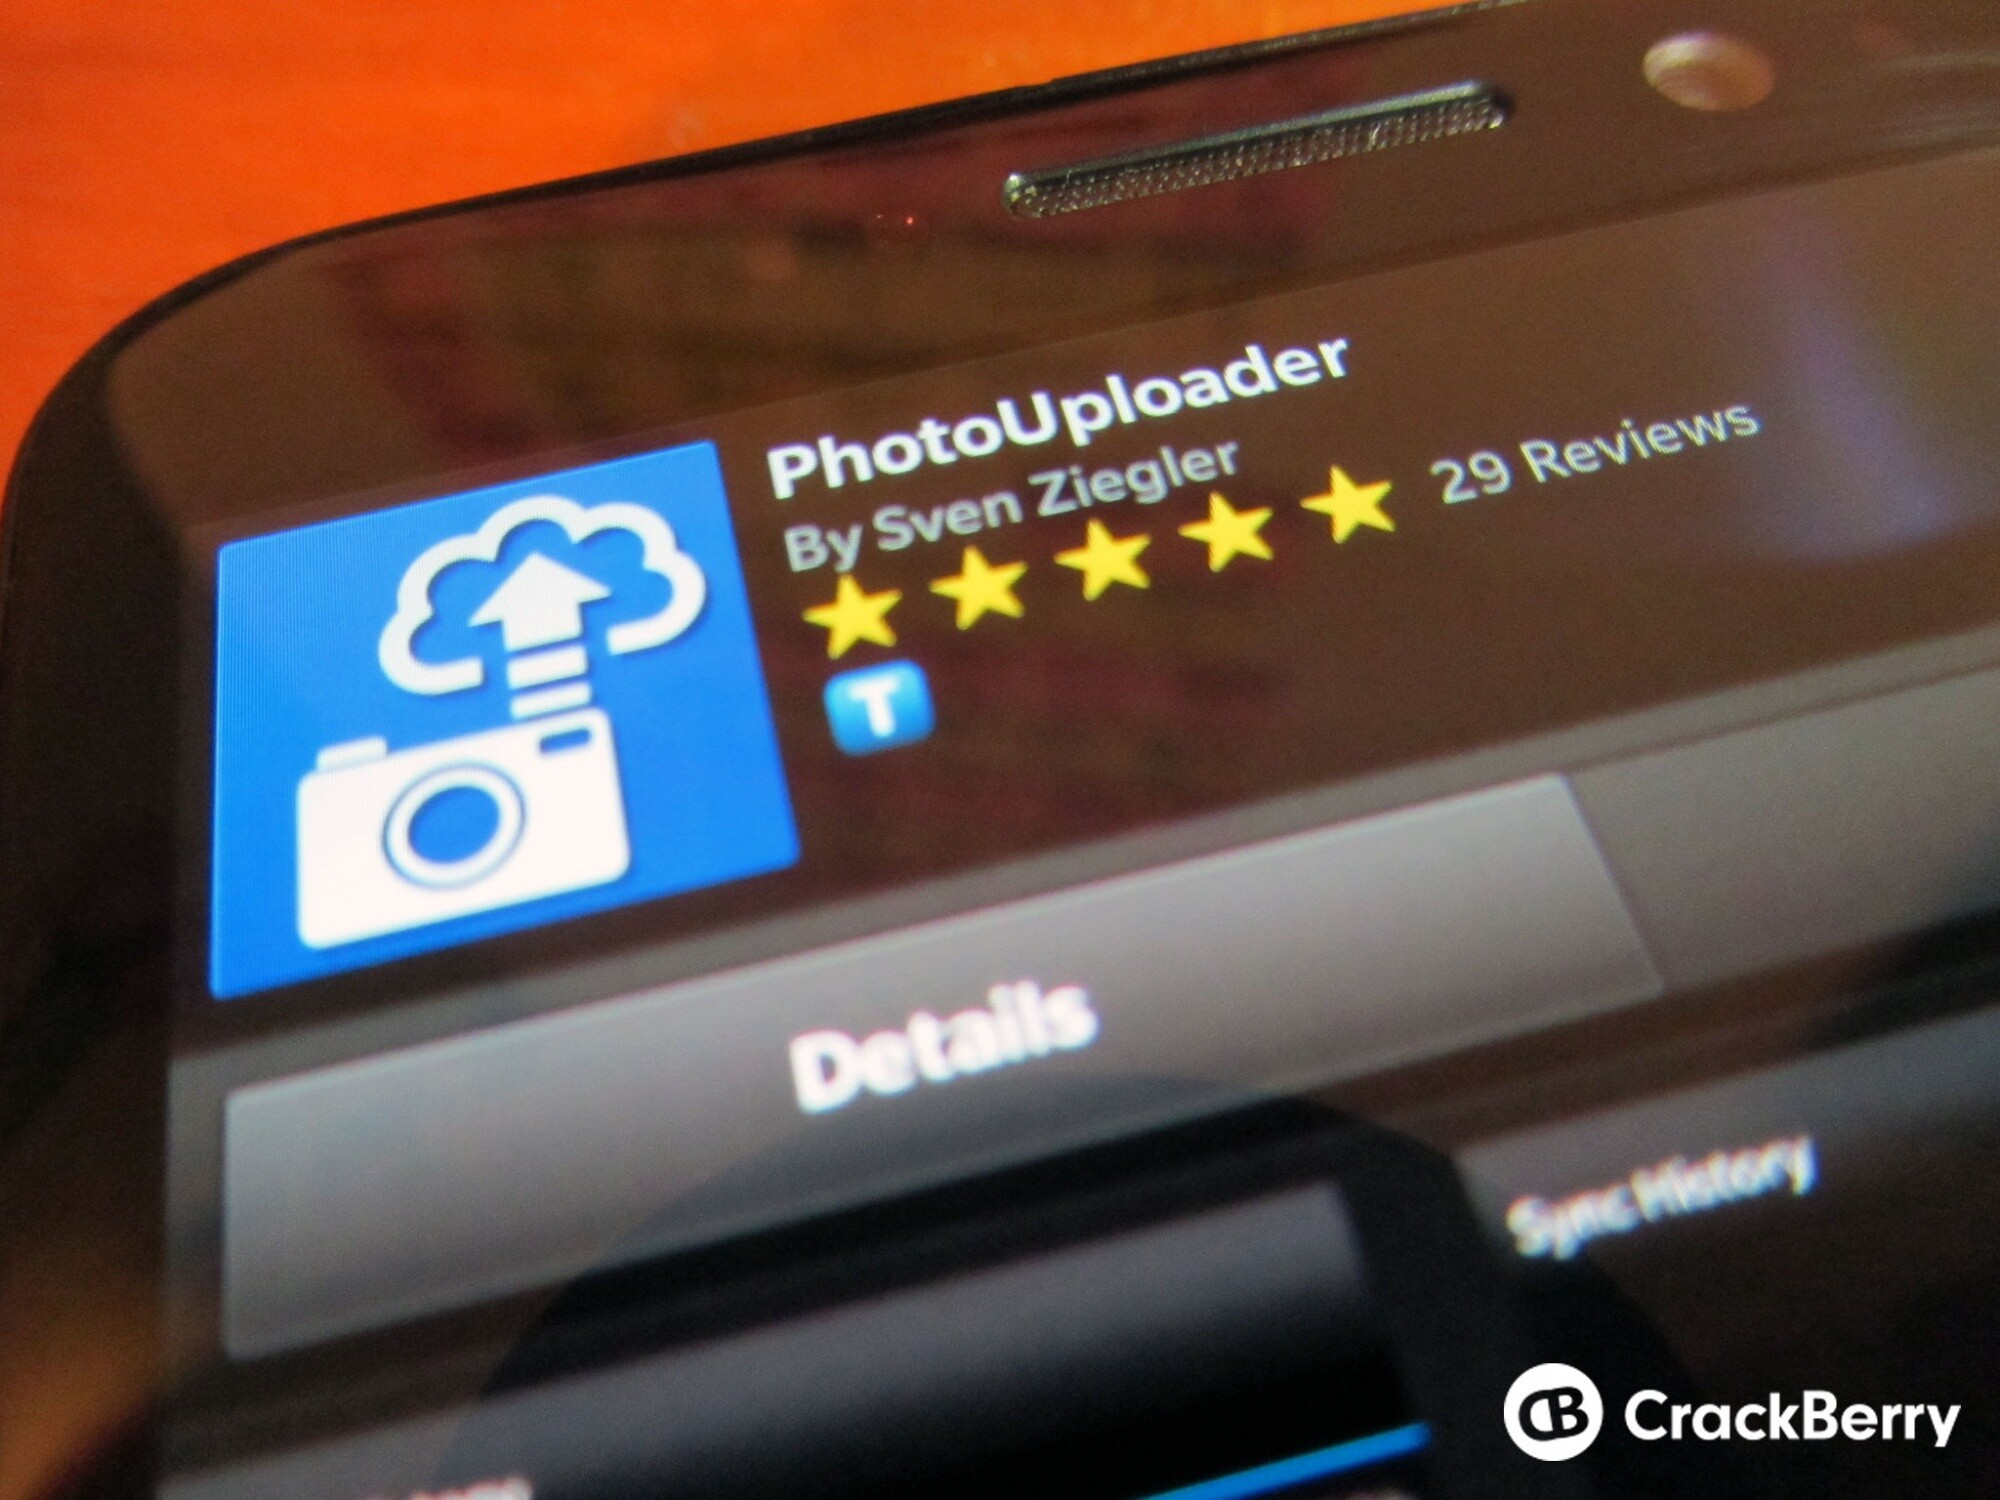 Manually sync photos or set a daily sync time in the latest version of PhotoUploader